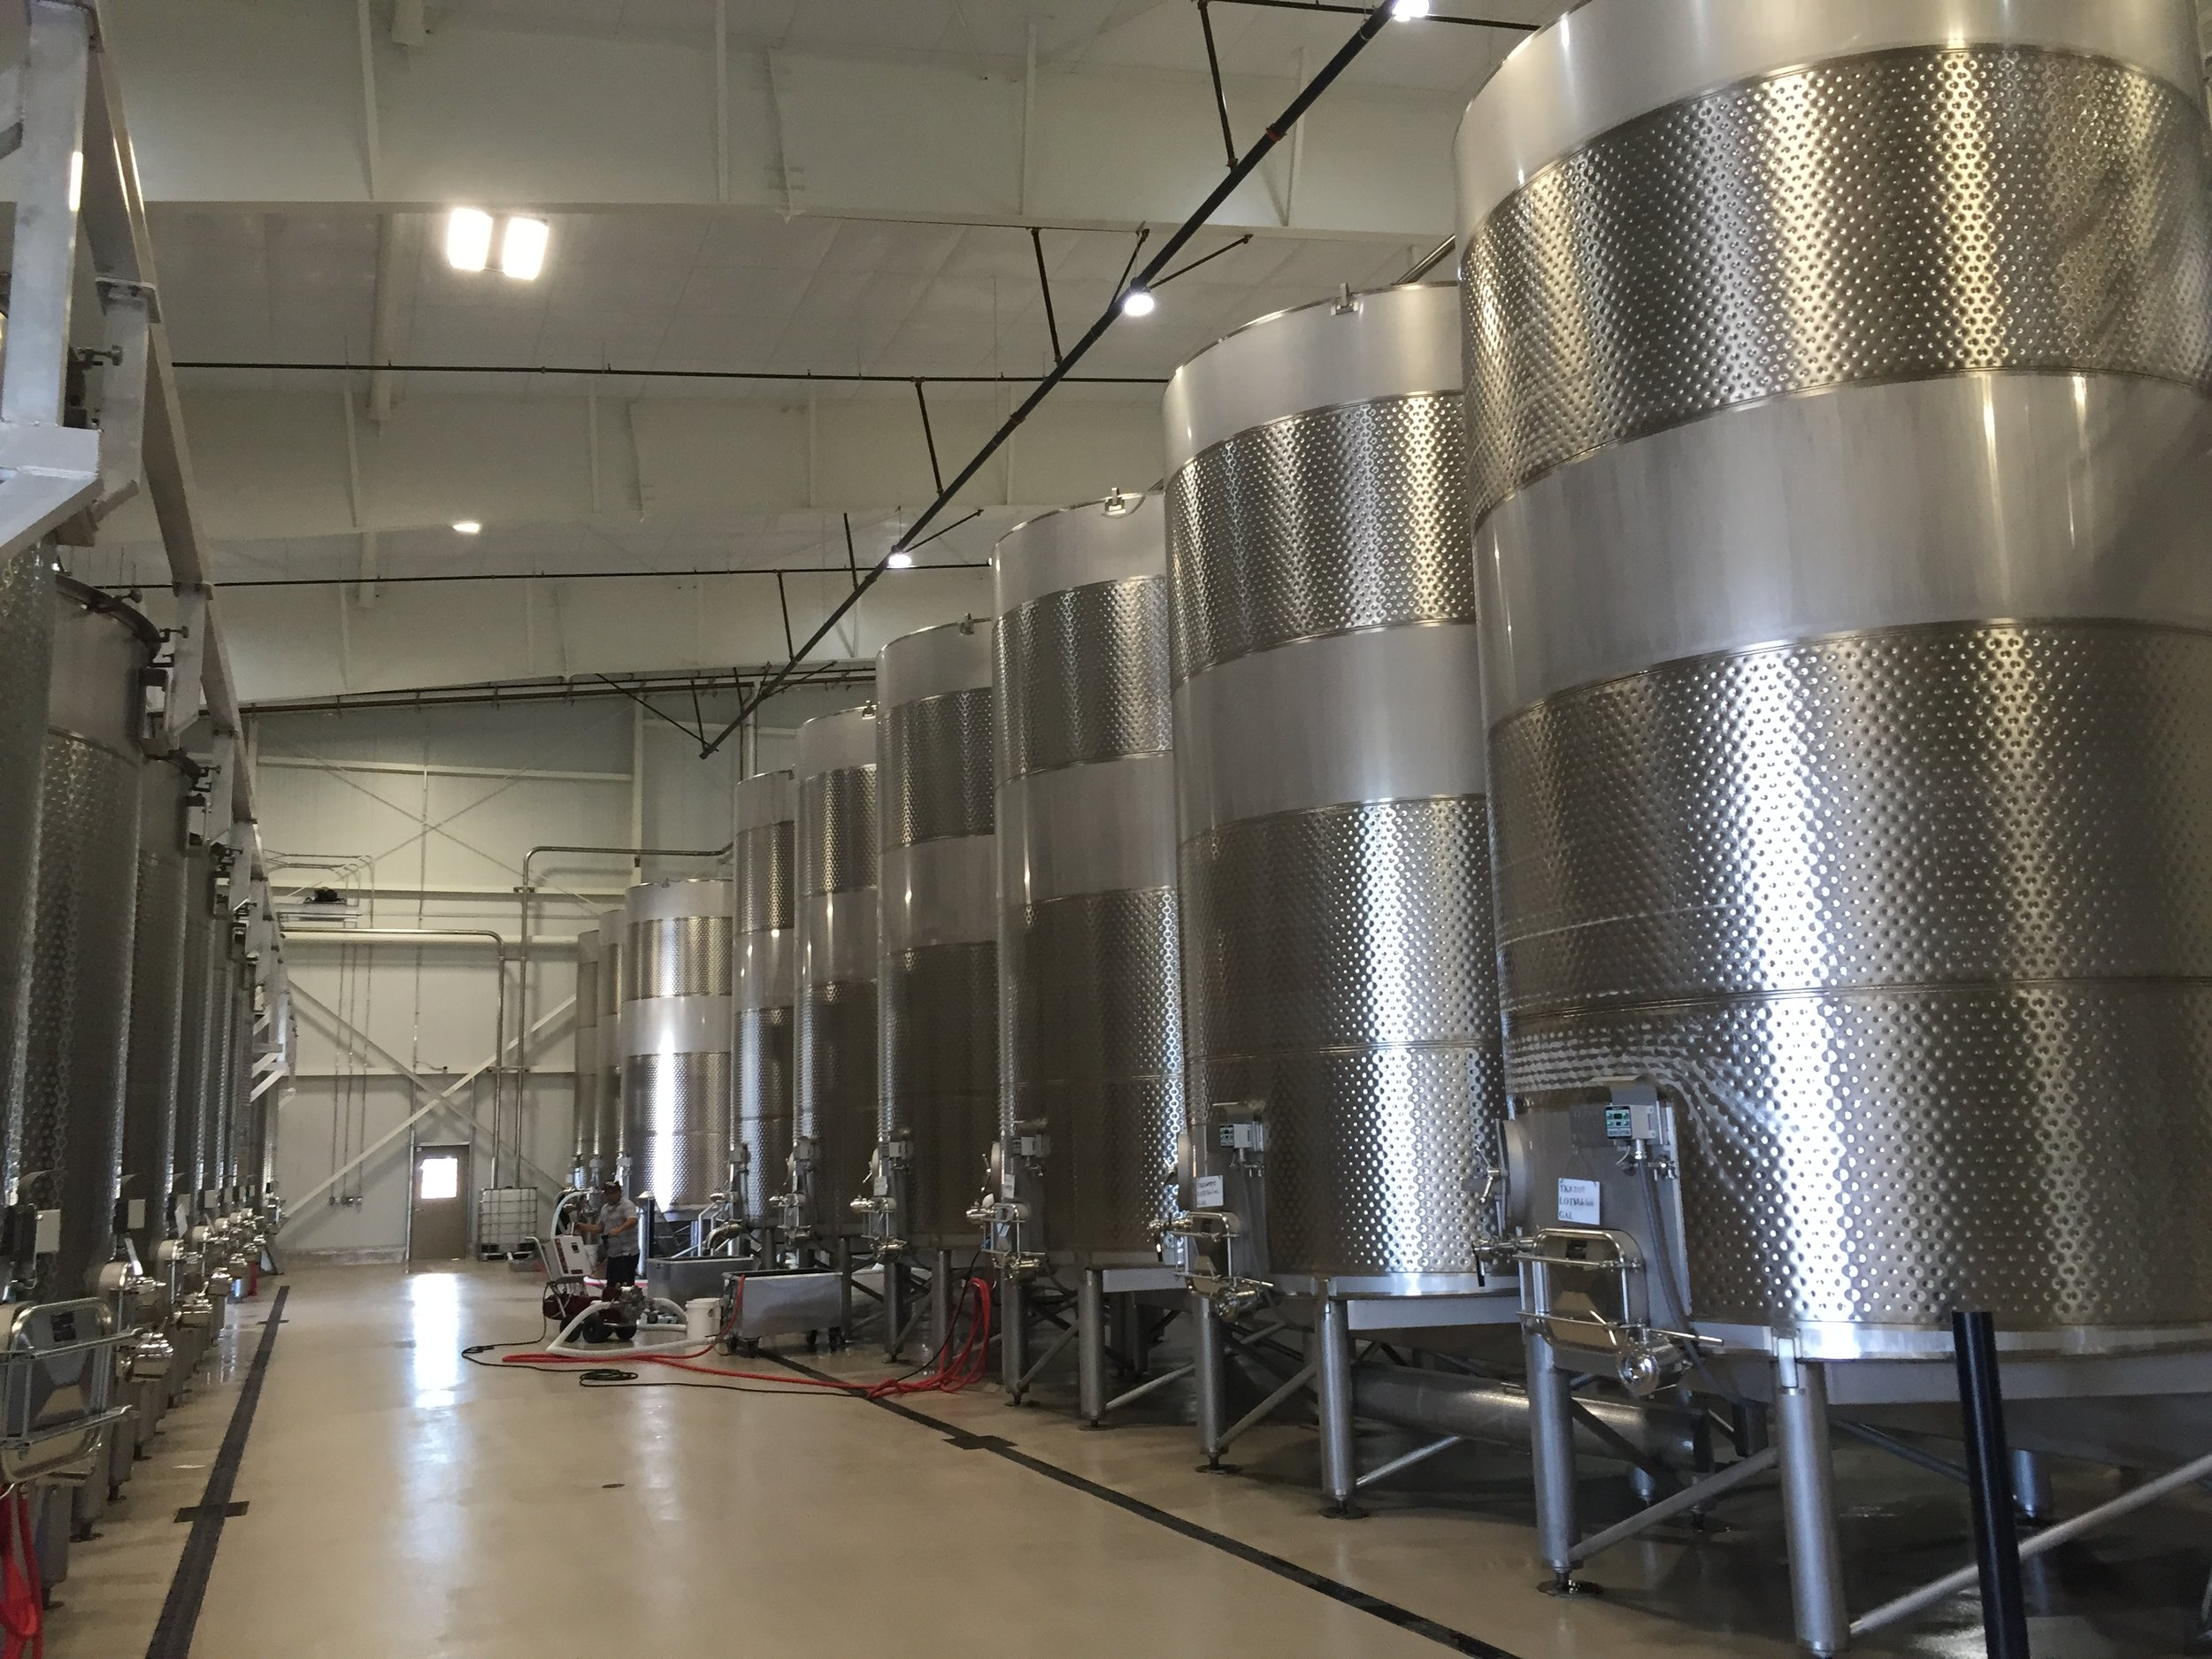 New wine production facility for San Antonio Family Winery in Paso Robles, Ca.